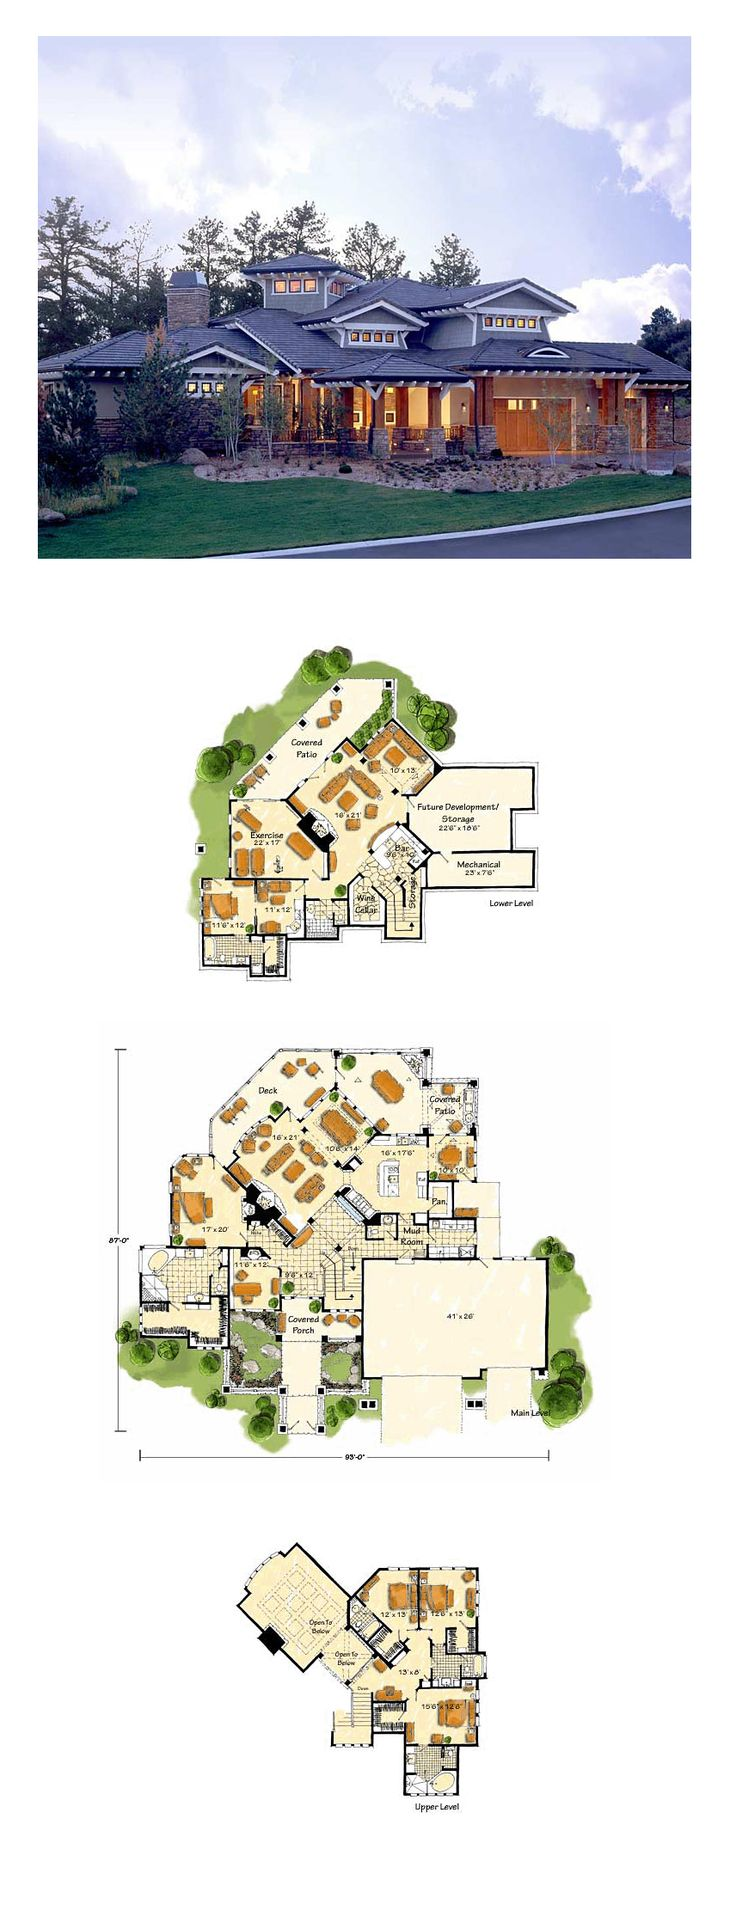 Hillside House Plan 43205 | Total Living Area: 5876 sq. ft., 5 bedrooms and 6.5 bathrooms. #hillsidehome